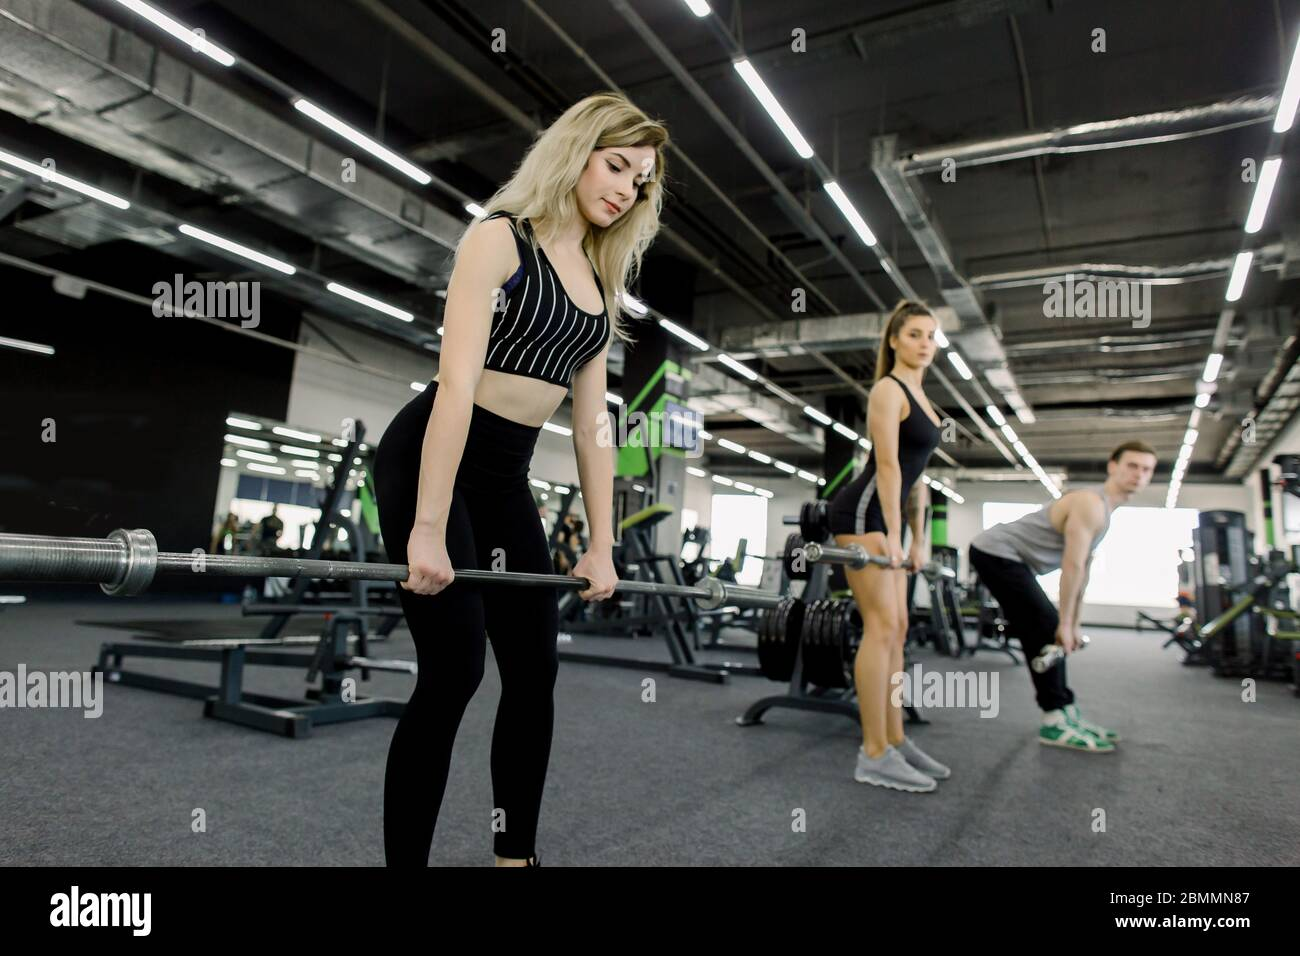 Close-up - Sporty Athletic Man and Women Training With Barbells. Cross fit  training. Young people During Workout in Gym. Strength Training Stock Photo  - Alamy